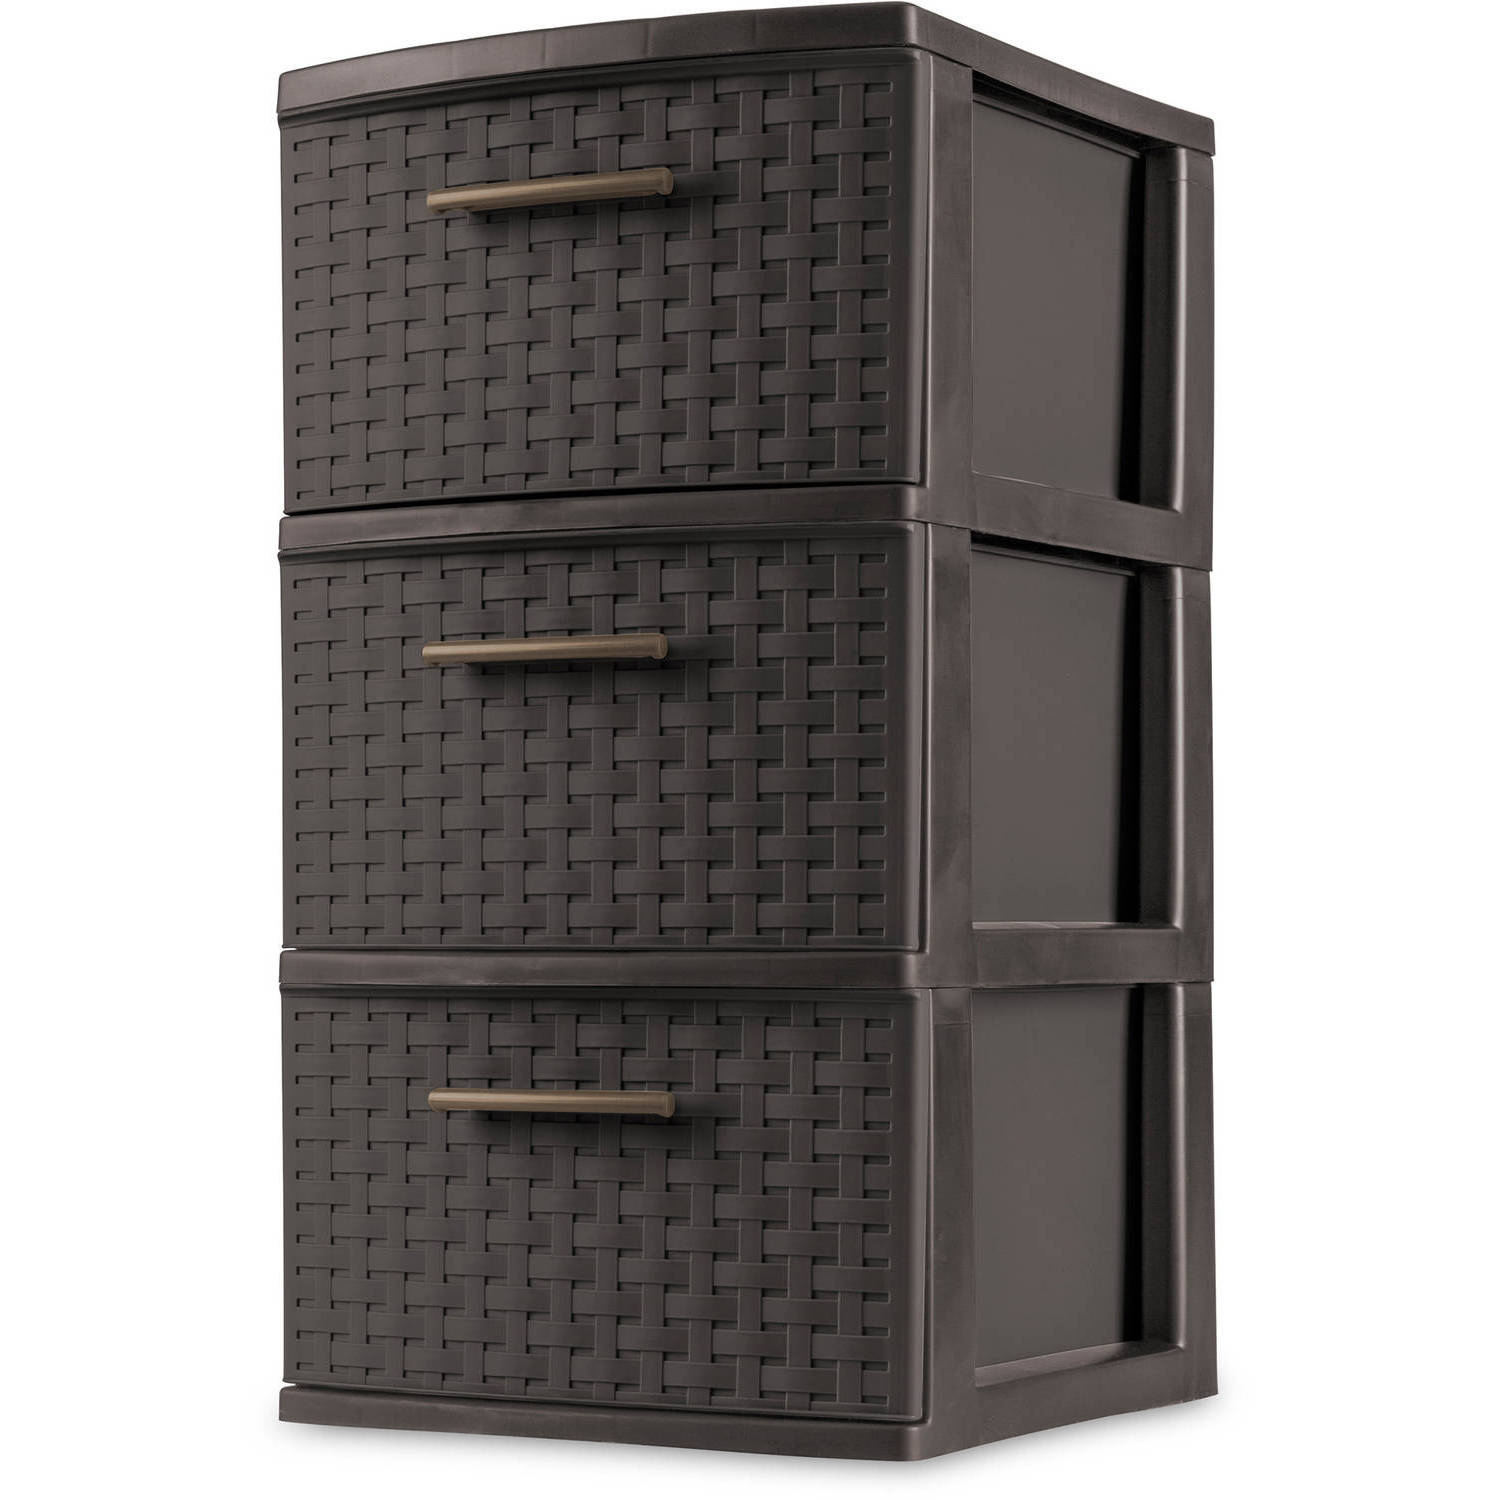 Sterilite 3-Drawer Weave Cart, Espresso (Available in Case of 2 or Single Unit)